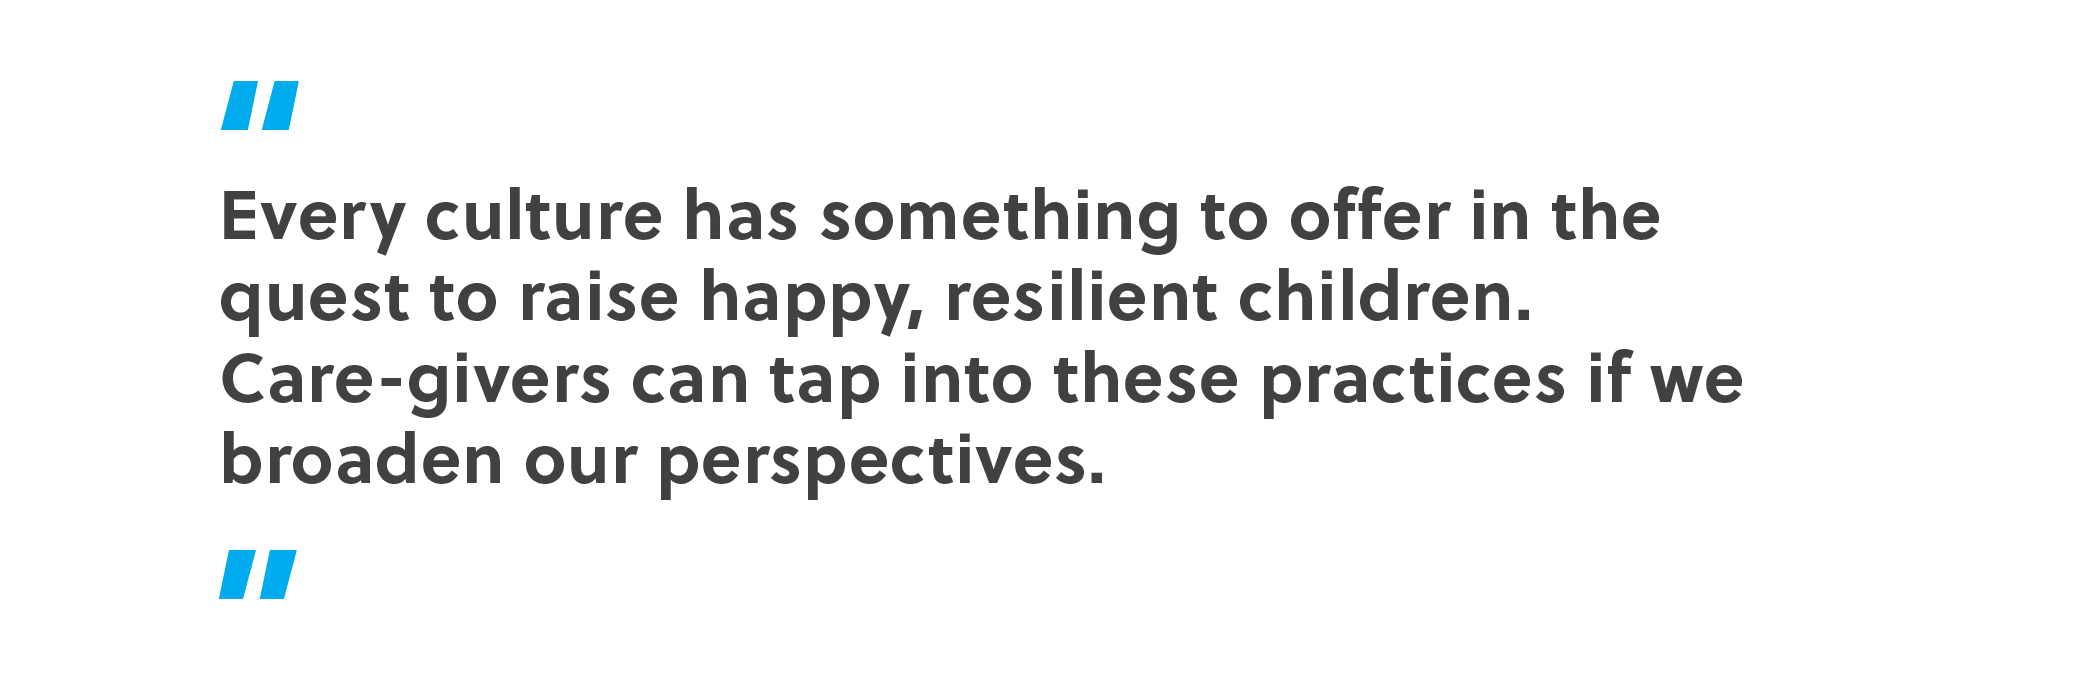 Every culture has something to offer in the quest to raise happy, resilient children. Care-givers can tap into these practices if we broaden our perspectives.